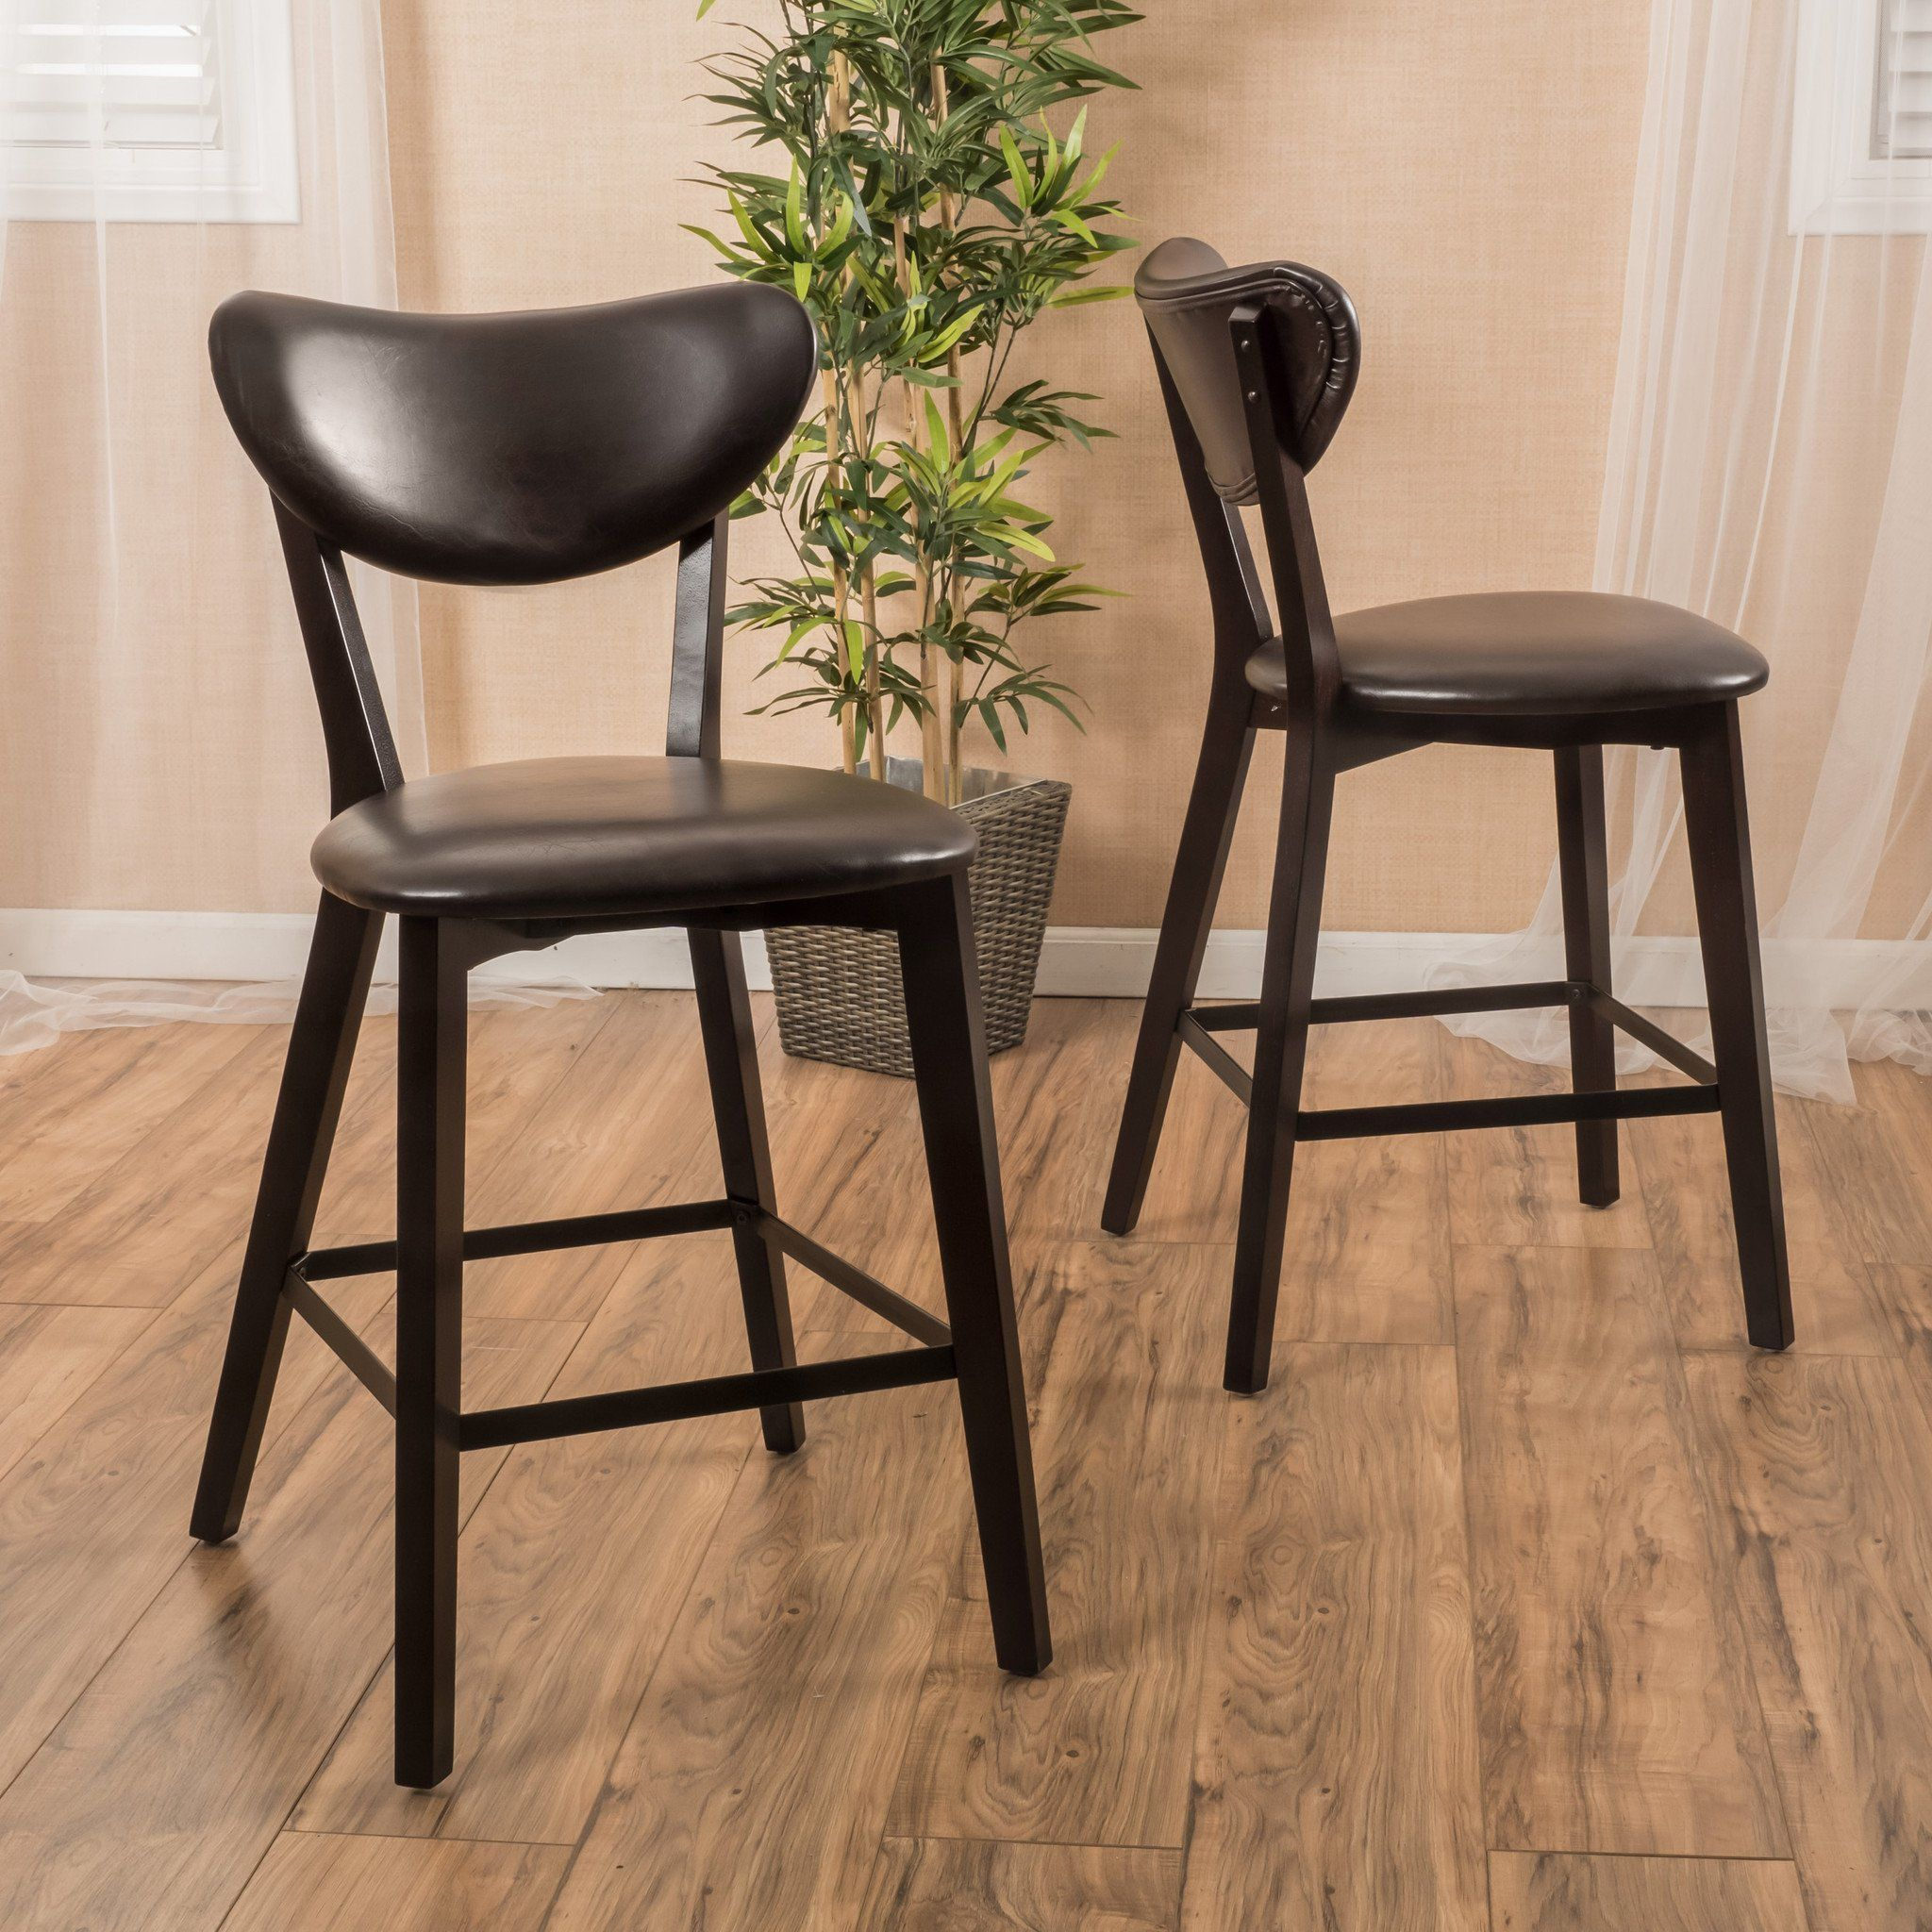 Ad Gicquel Contemporary Brown Leather Counterstool (Set Of 2)